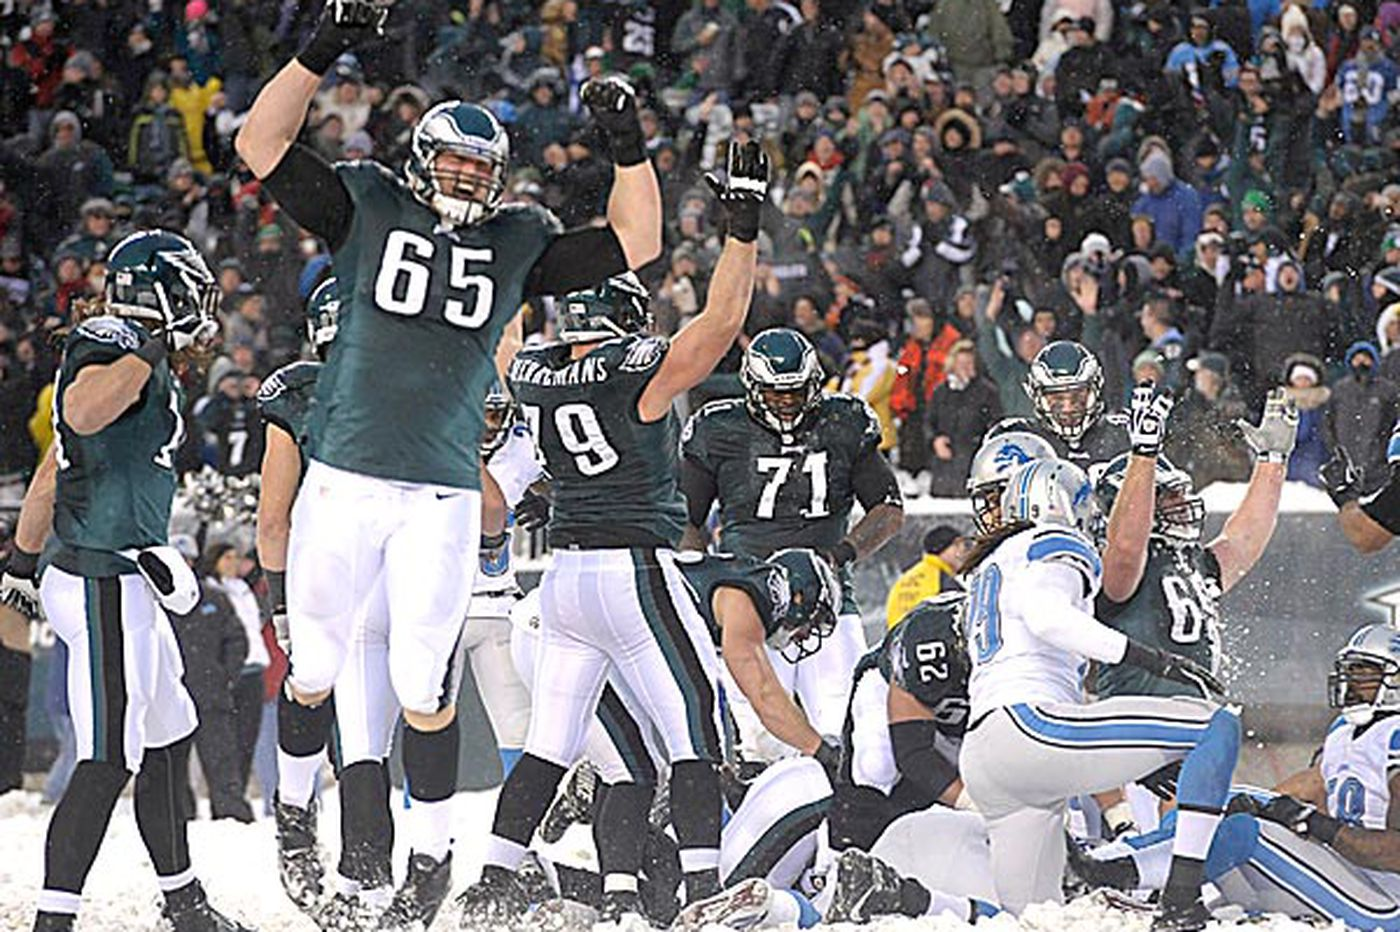 Eagles' o-line plows running path